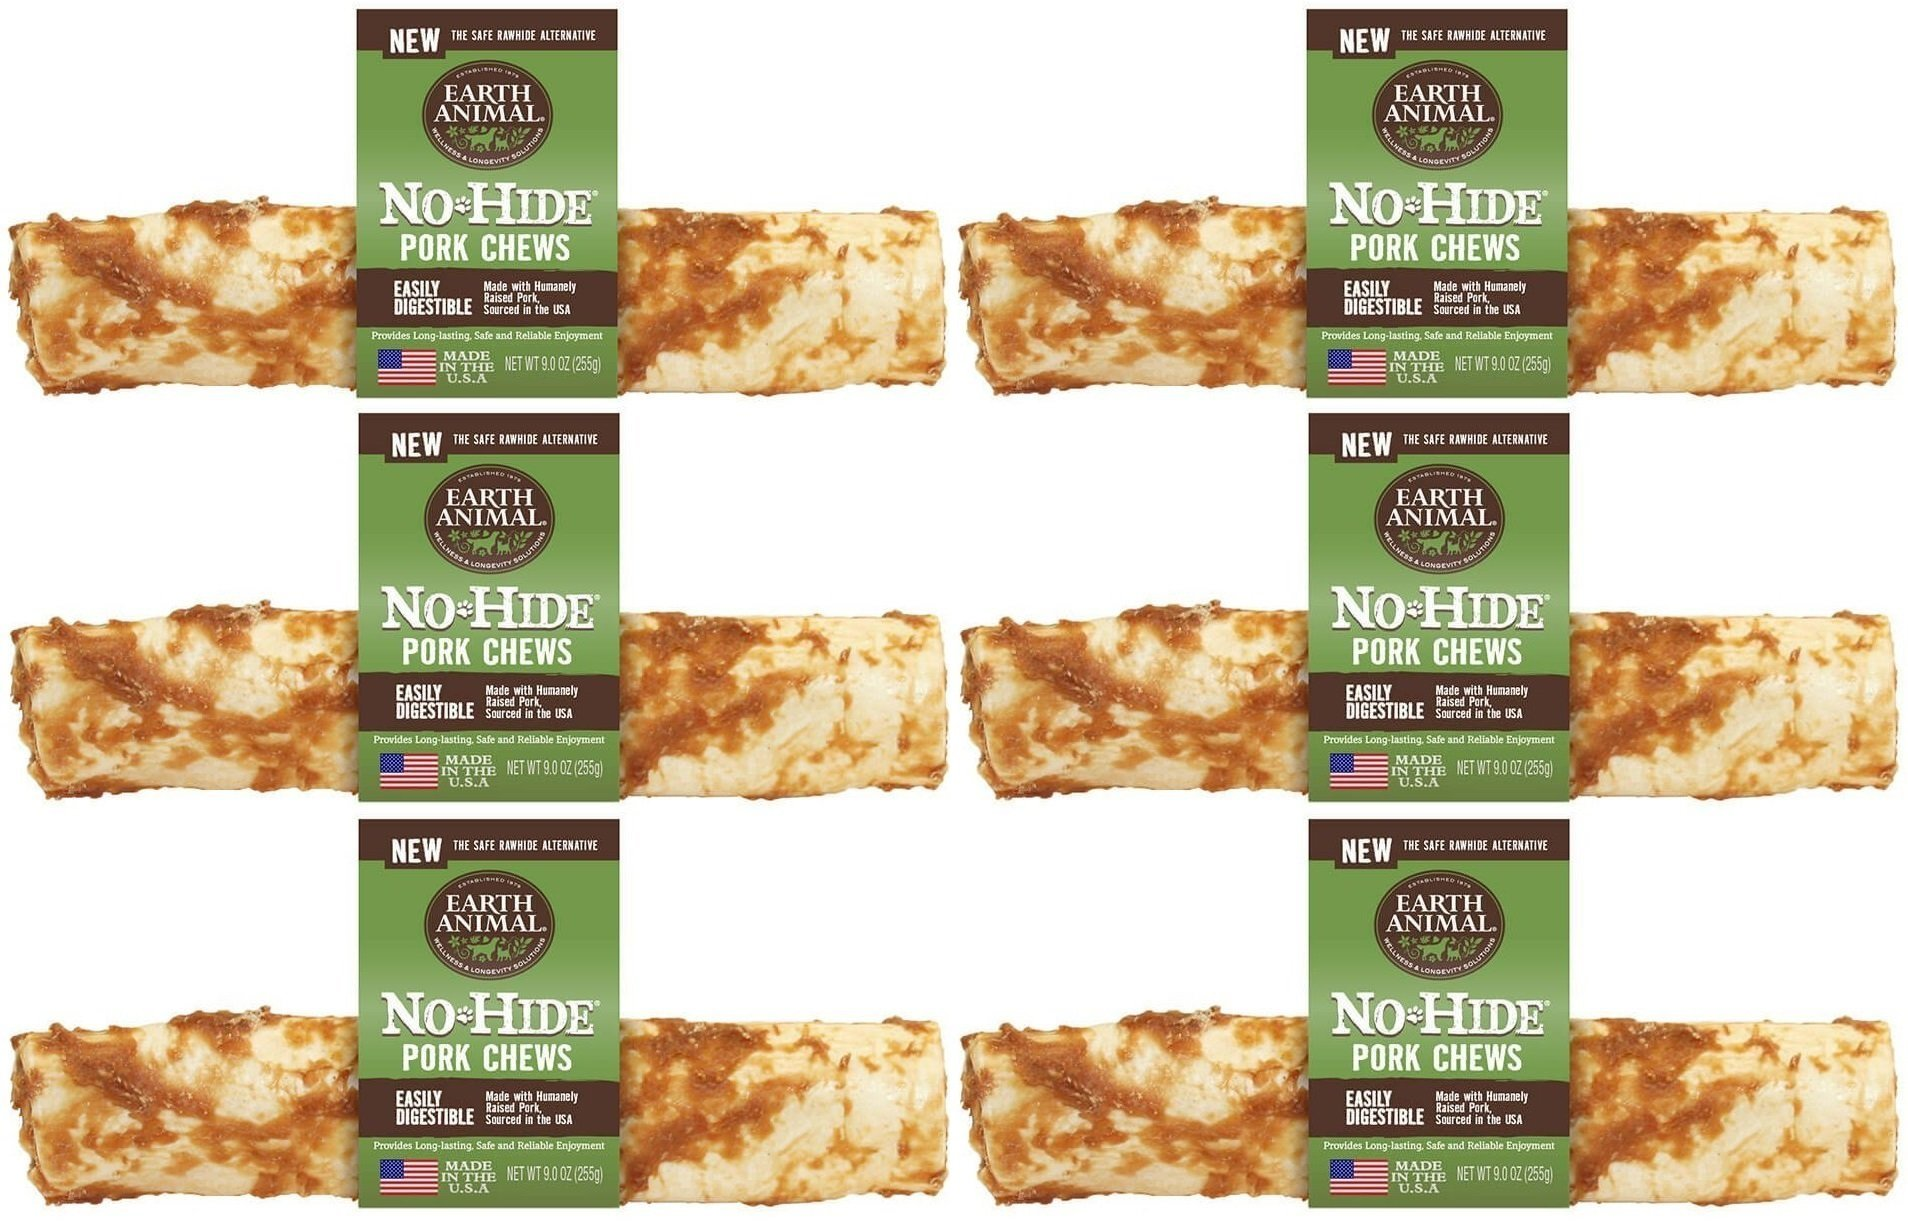 Earth Animal 6 Pack of No-Hide Pork Chews, 4-Inch